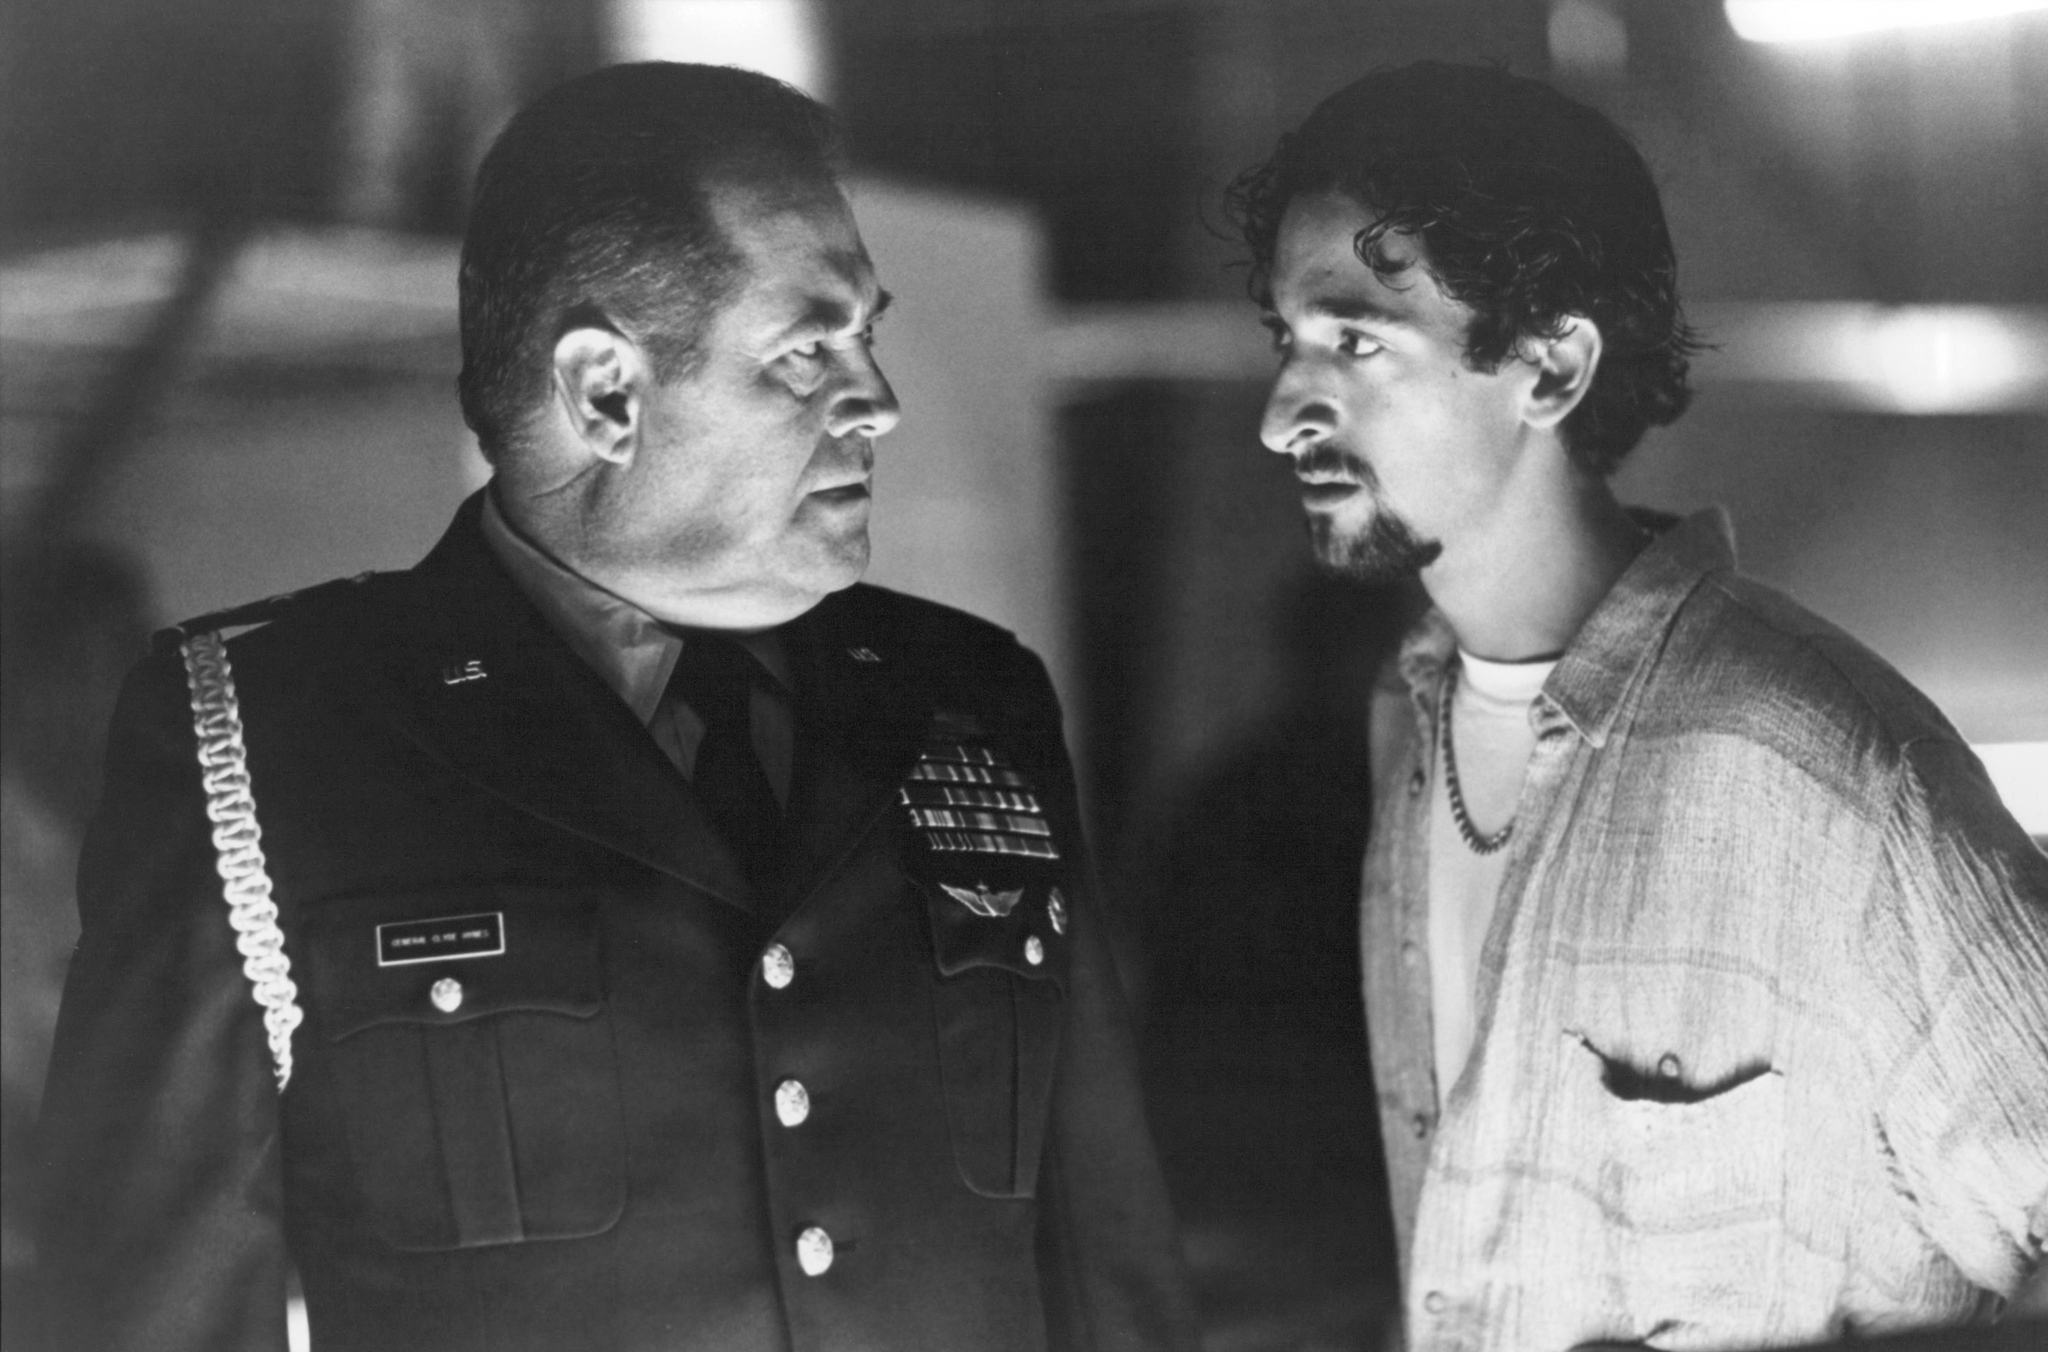 Adrien Brody and Barry Corbin in Solo (1996)